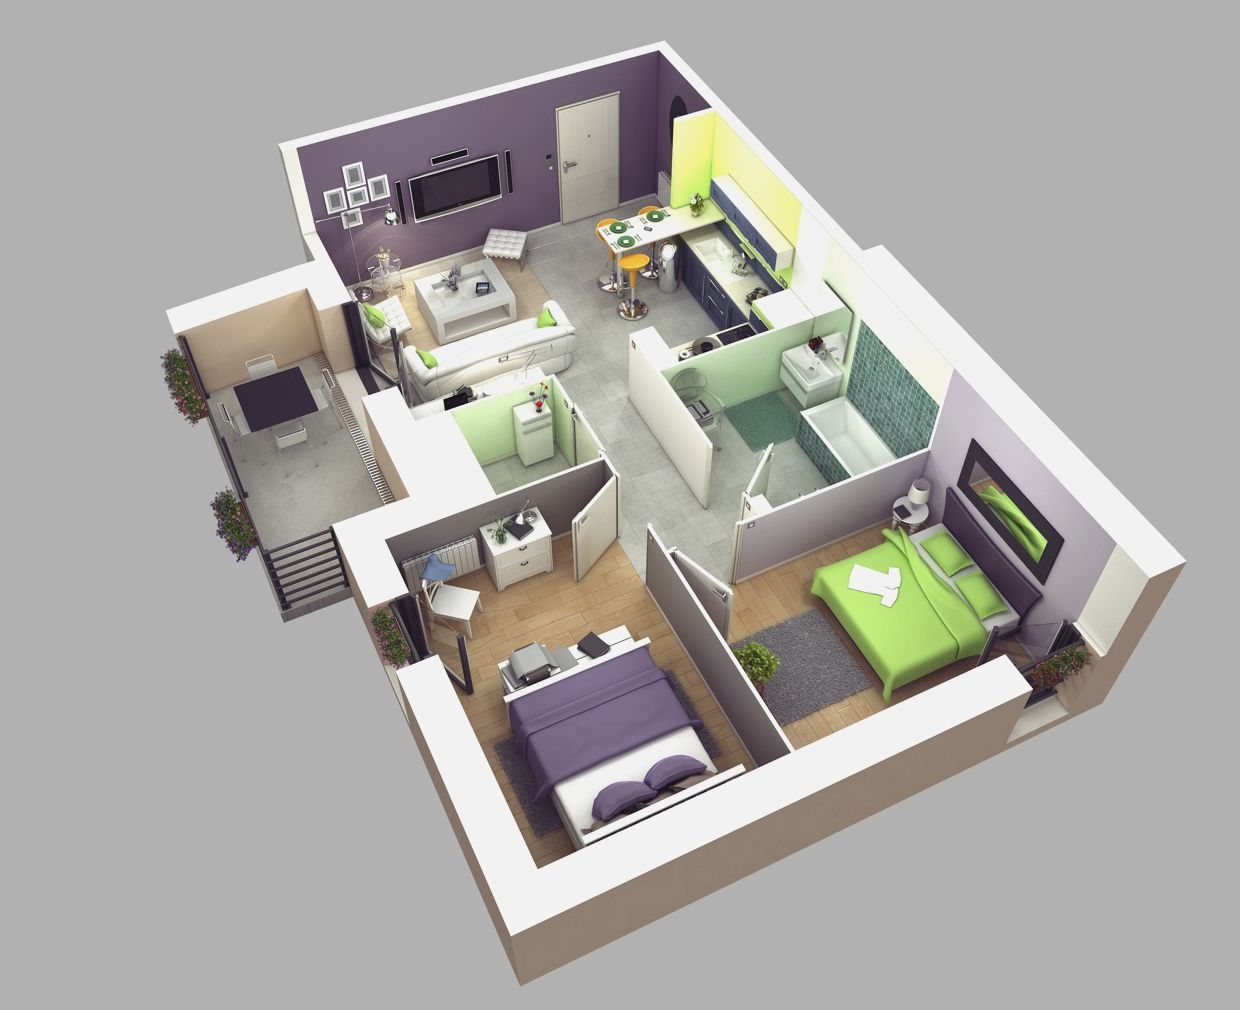 1 bedroom house plans 3d just the two of us apartment Small house designs and floor plans